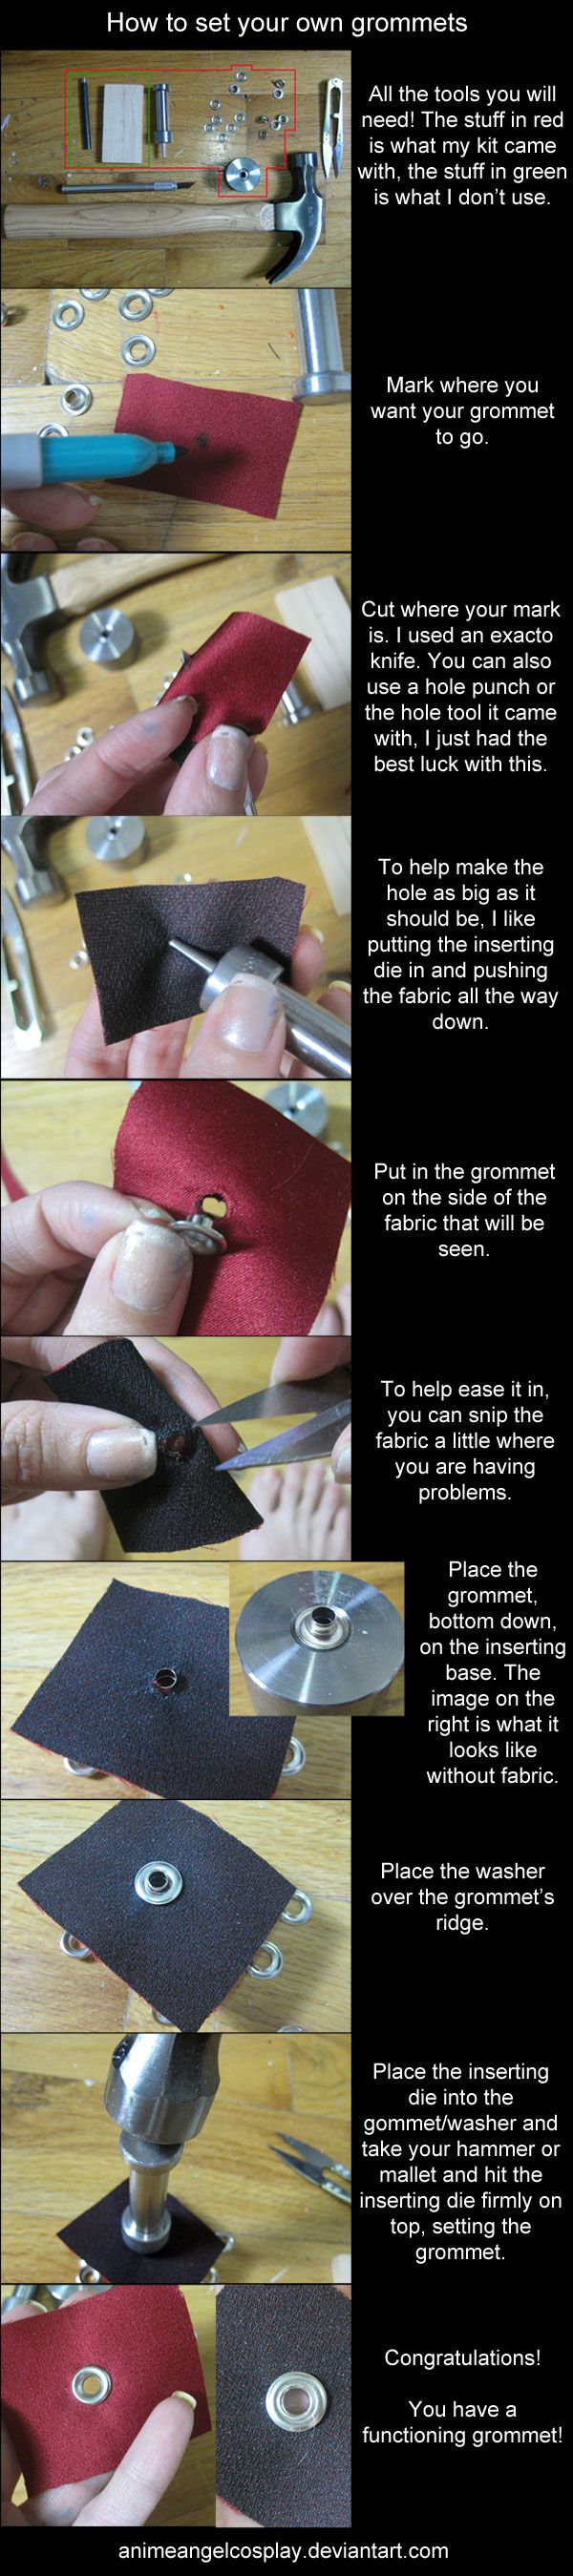 Tutorial-How to set grommets by ~AnimeAngelCosplay on deviantART